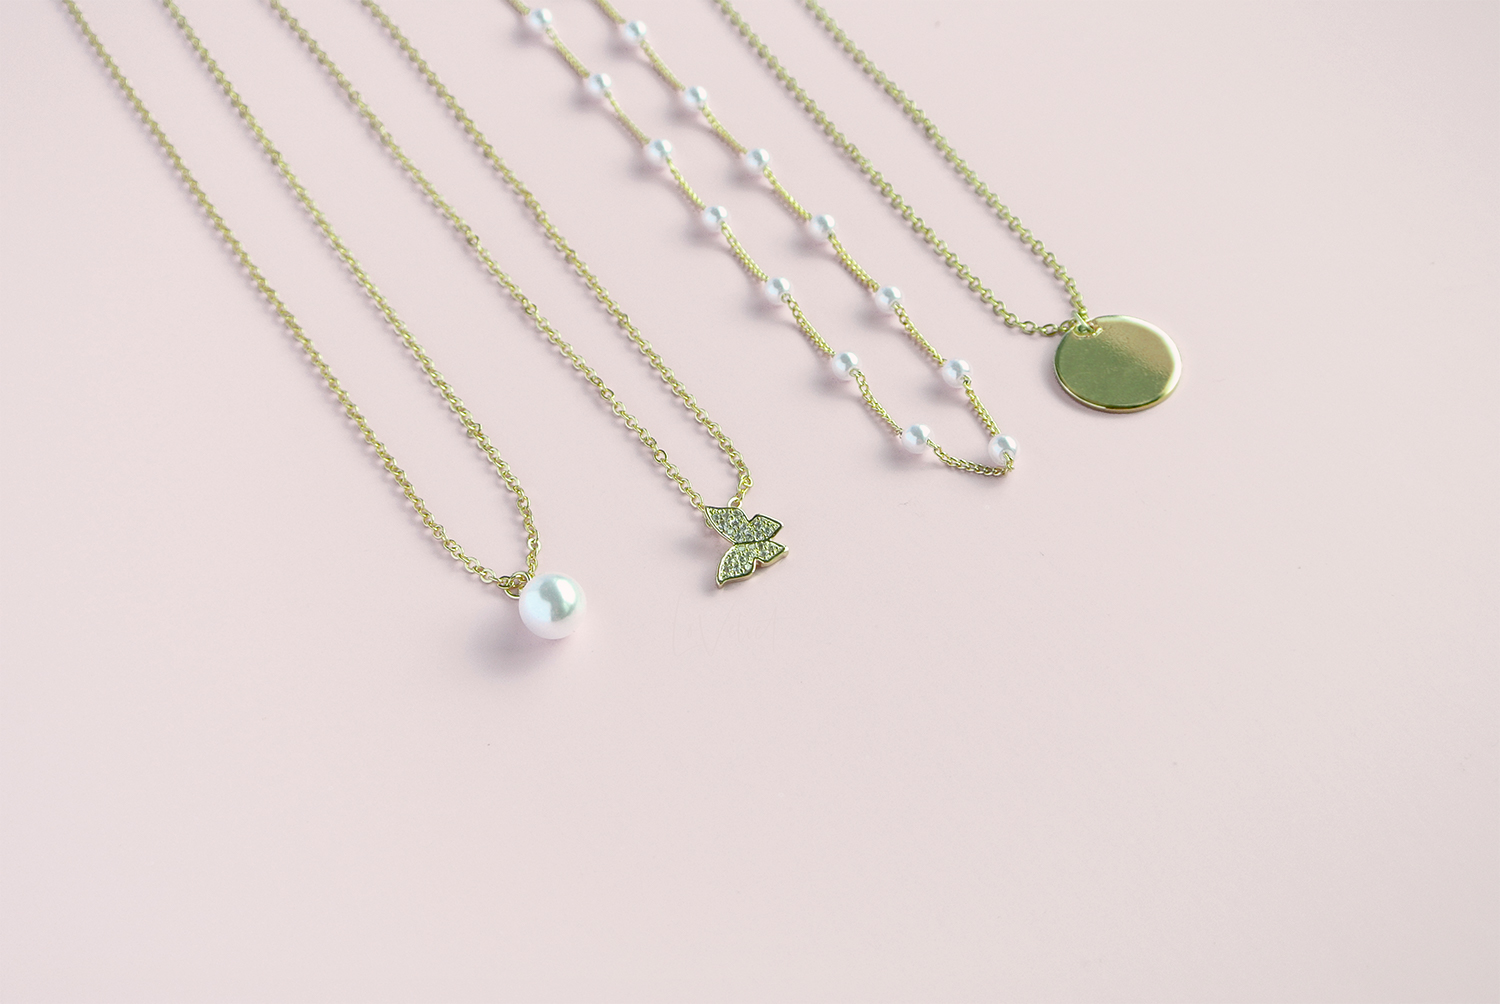 Lovelvet | NECKLACES WITH LOVE